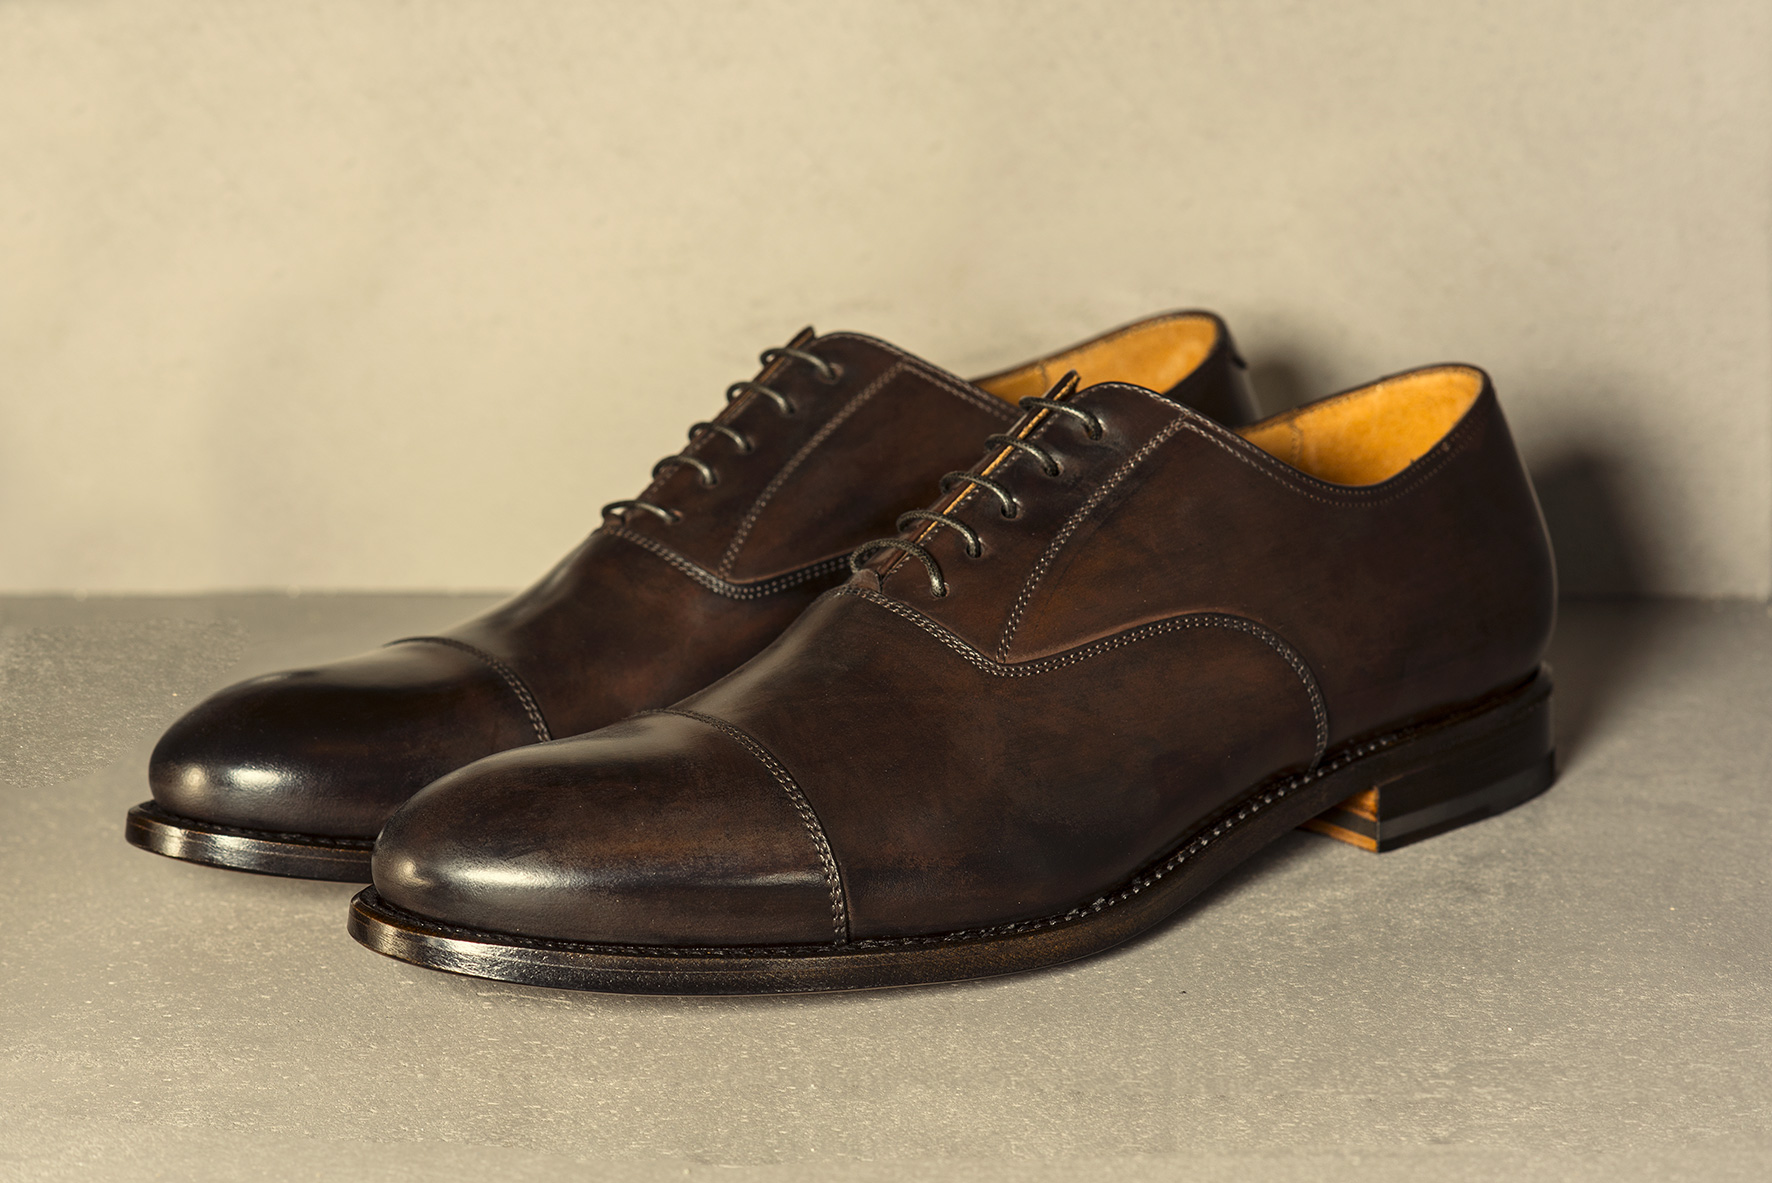 classic men's shoes